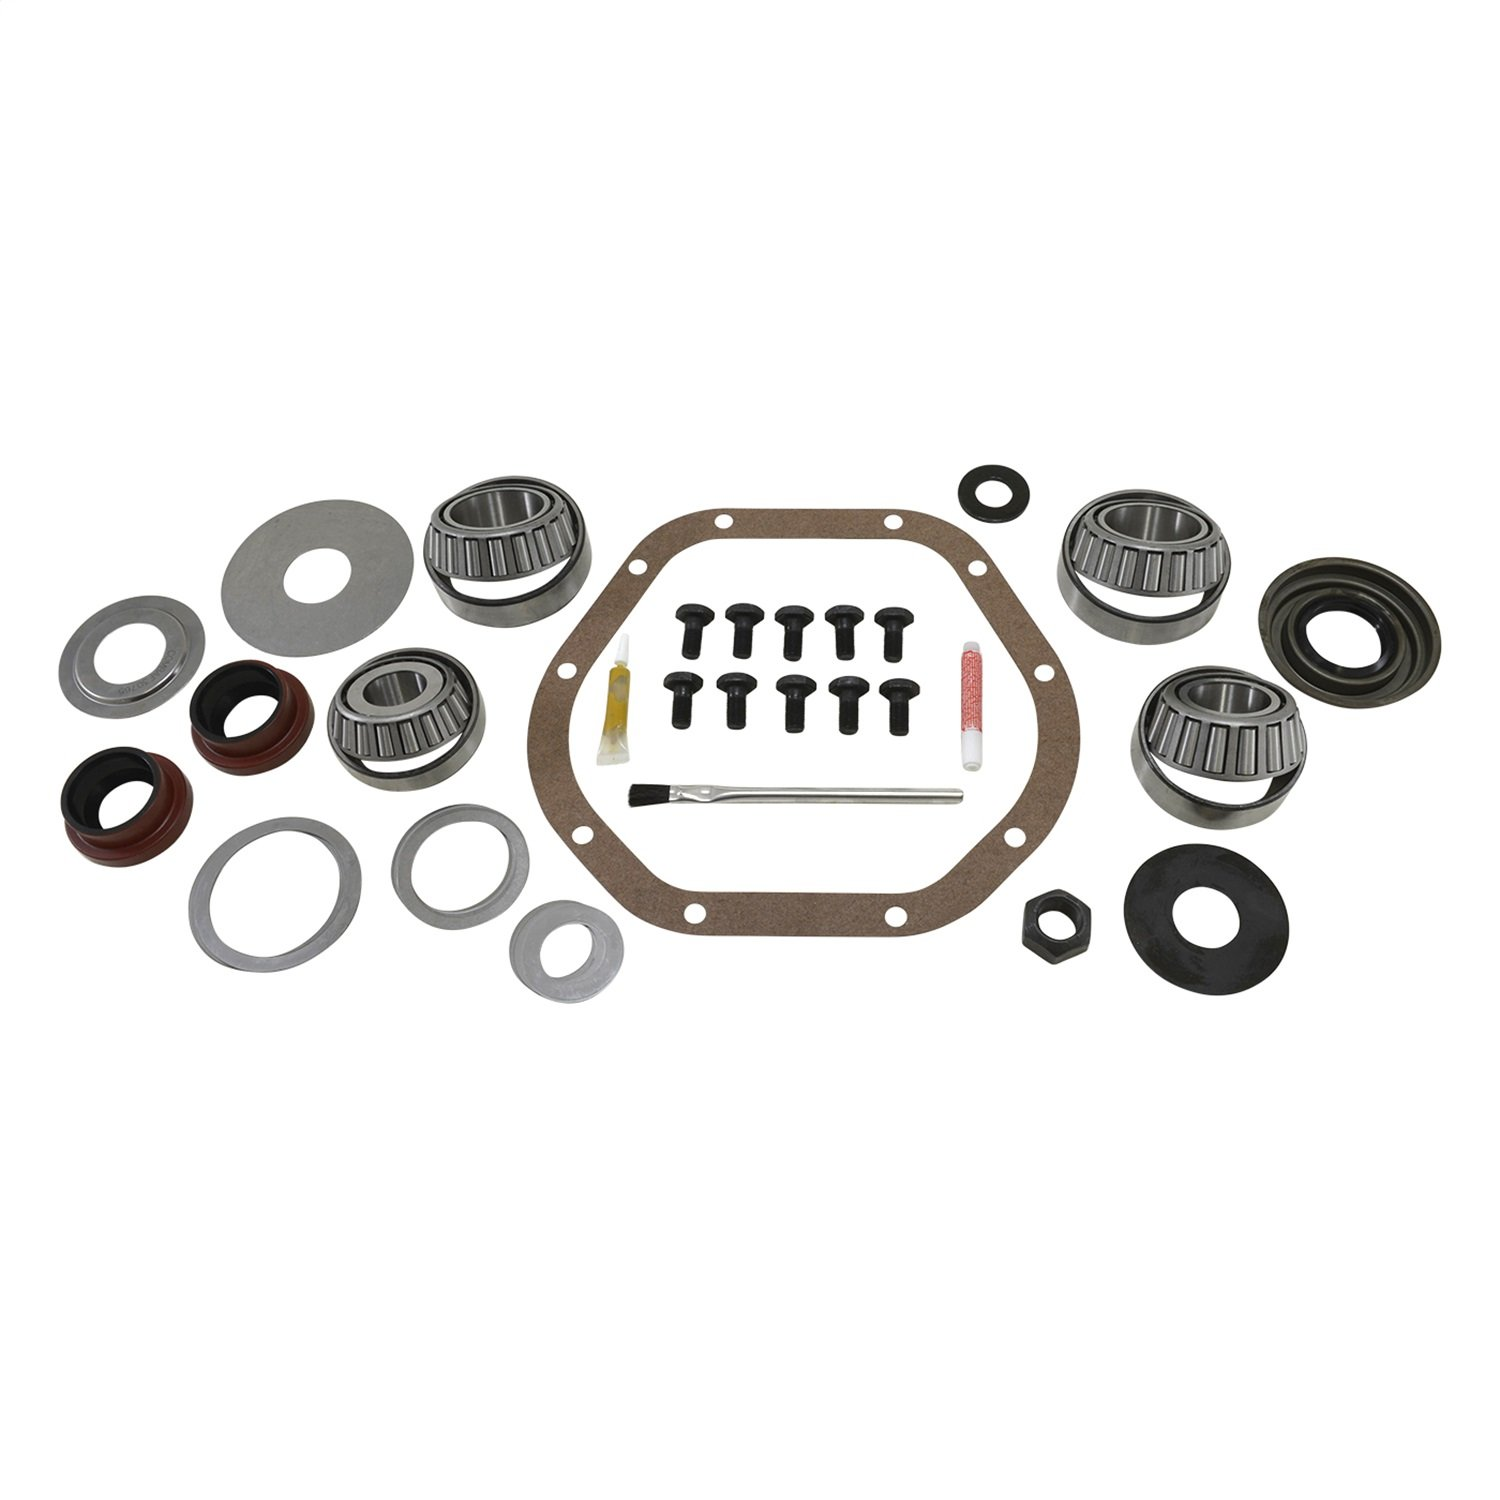 Yukon YKD44 Master Overhaul Kit for Dana 44 Axle with 30 Spline